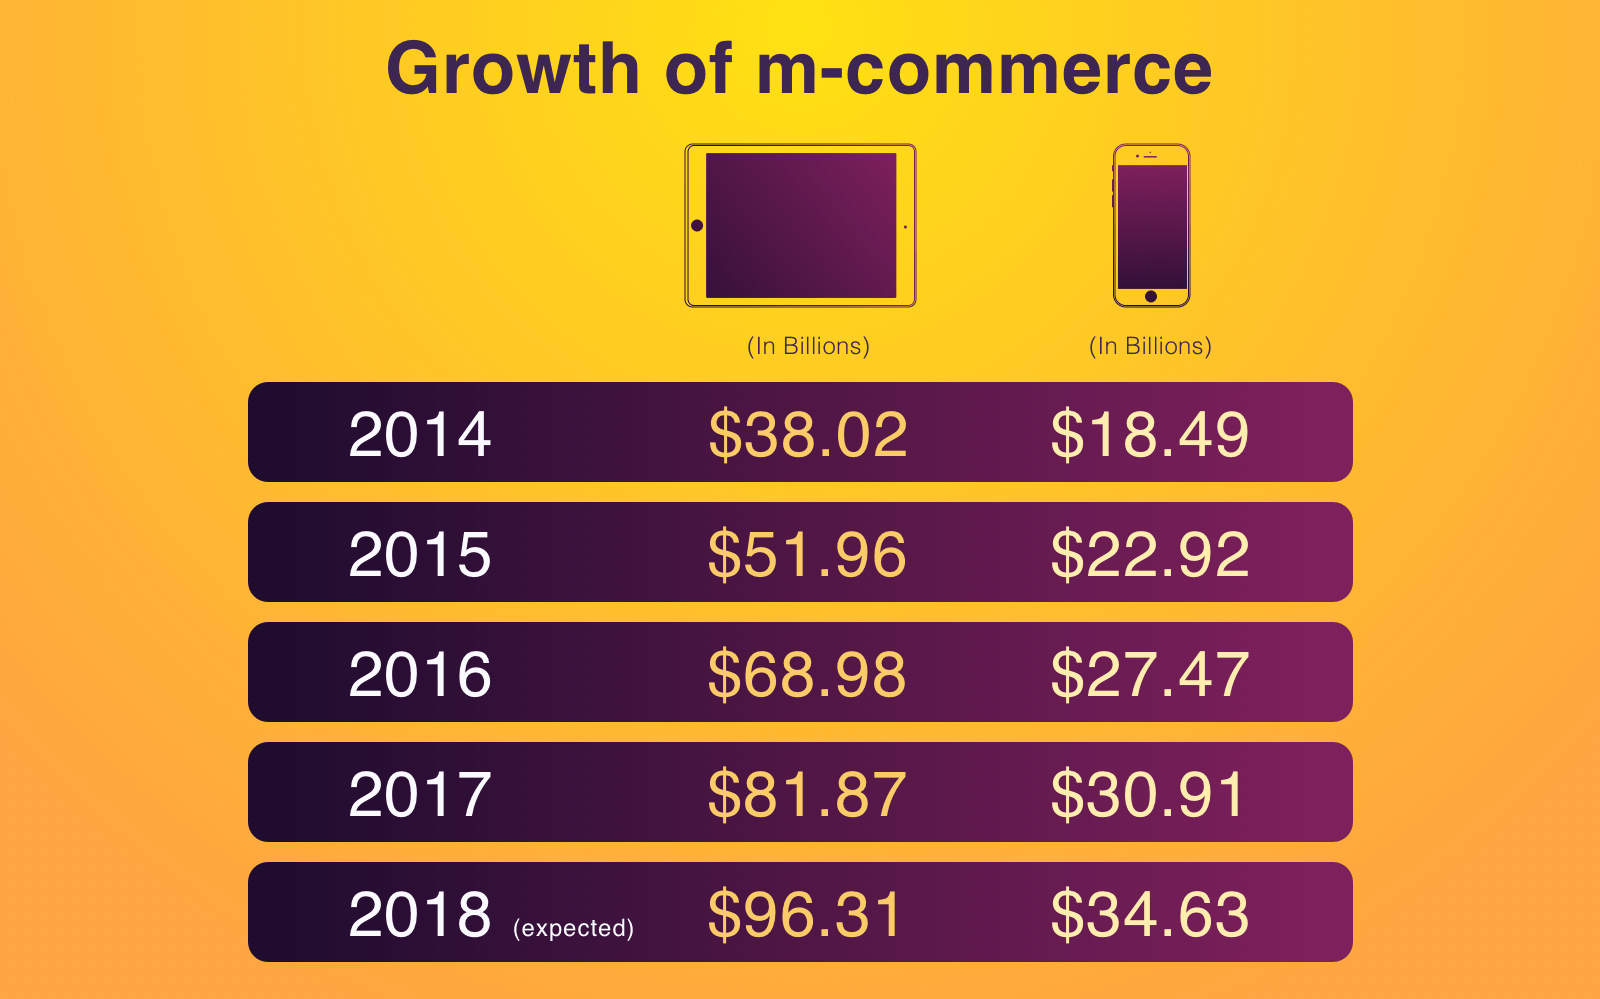 M-commerce growth